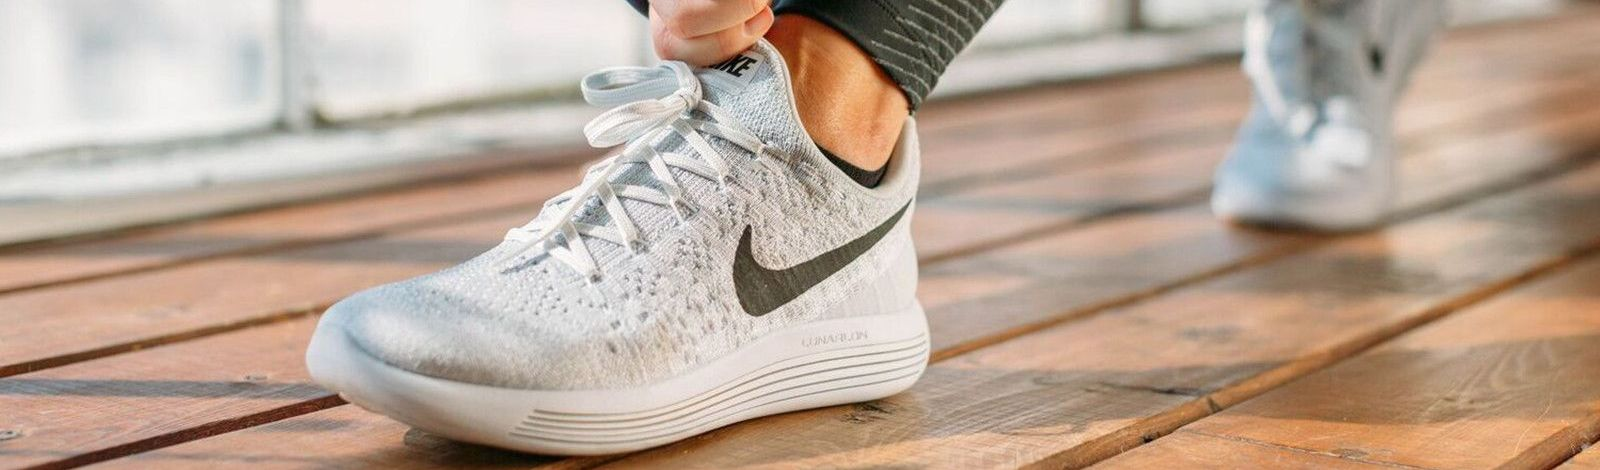 16 Best Nike Running Shoes 2018 (User Reviews   Buyer s Guide) b05821b2a3bf6